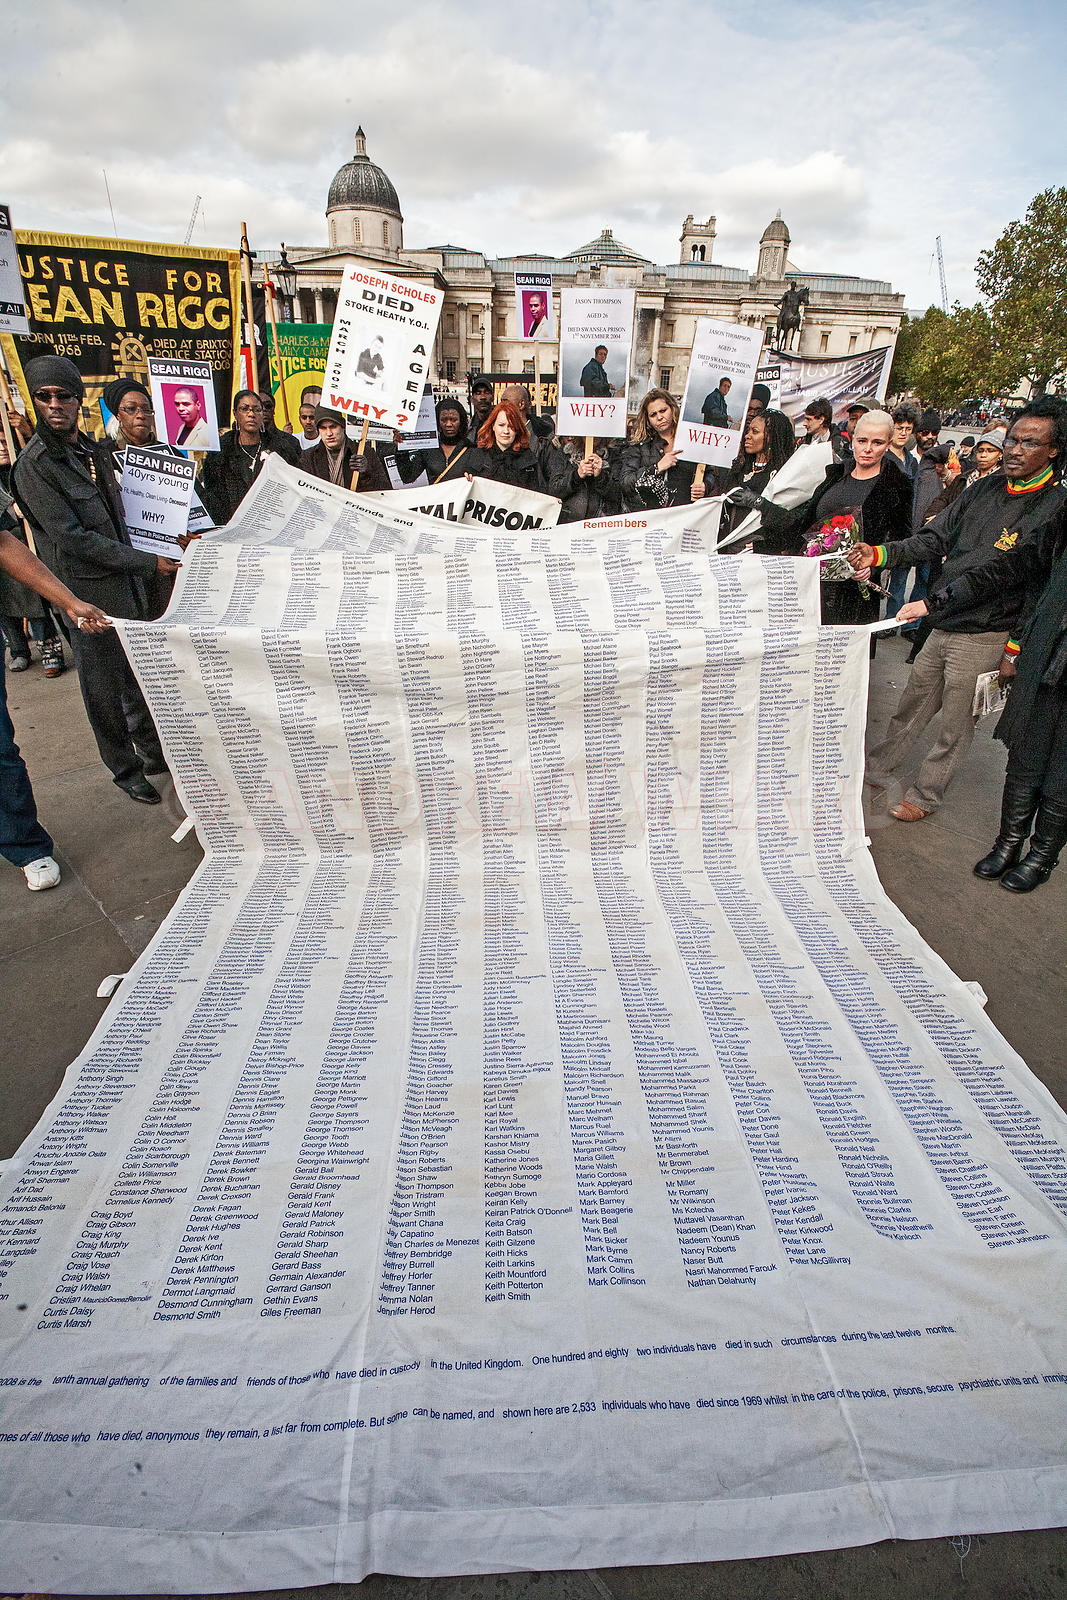 A list of all those who have died in police custody, prisons and psychiatric hospitals, at the United Friends and Families Ca...